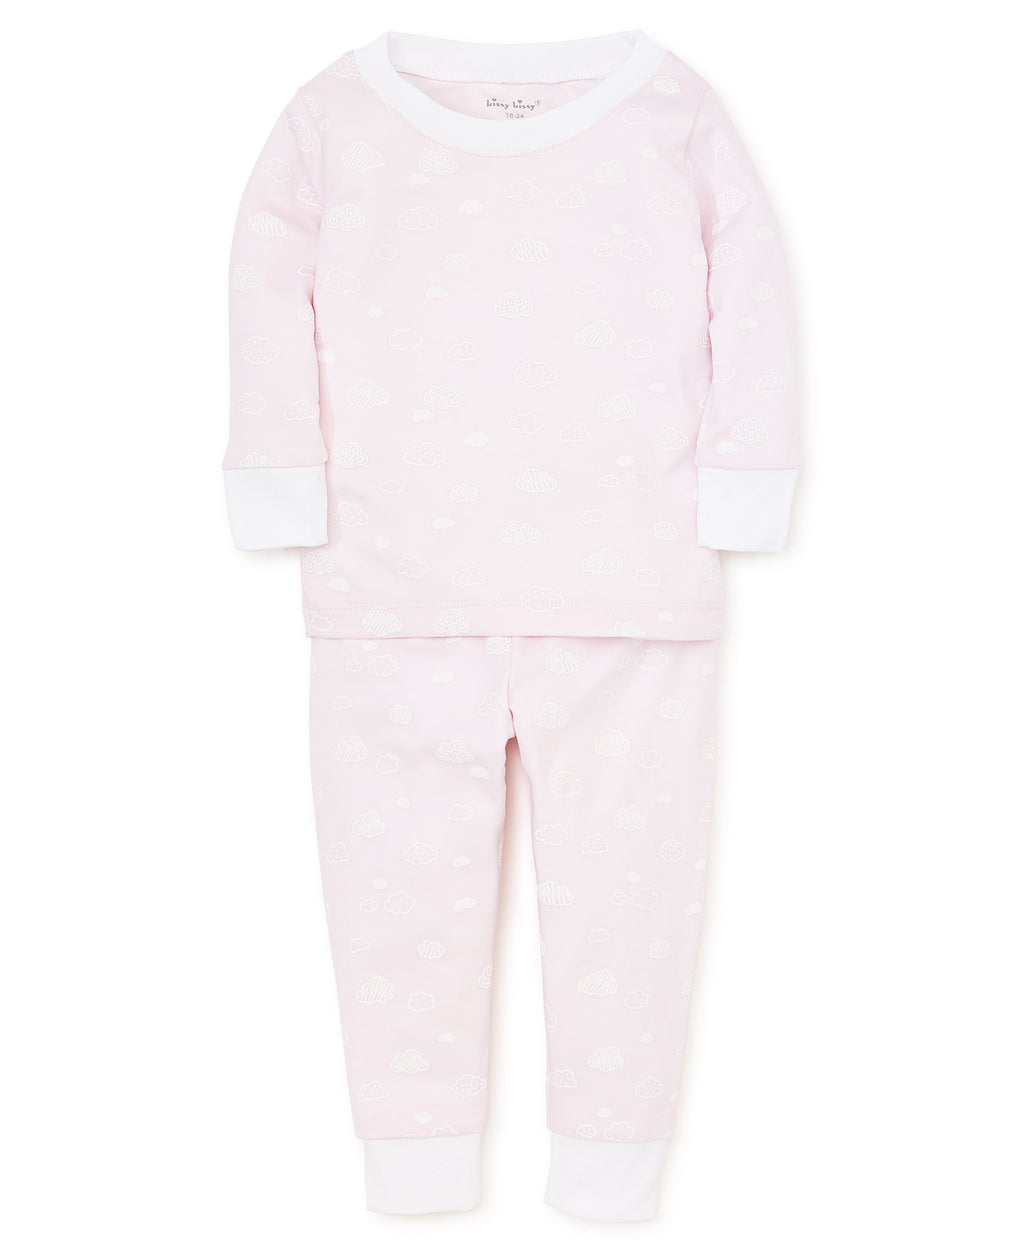 Cotton Clouds Pink Toddler Pajama Set